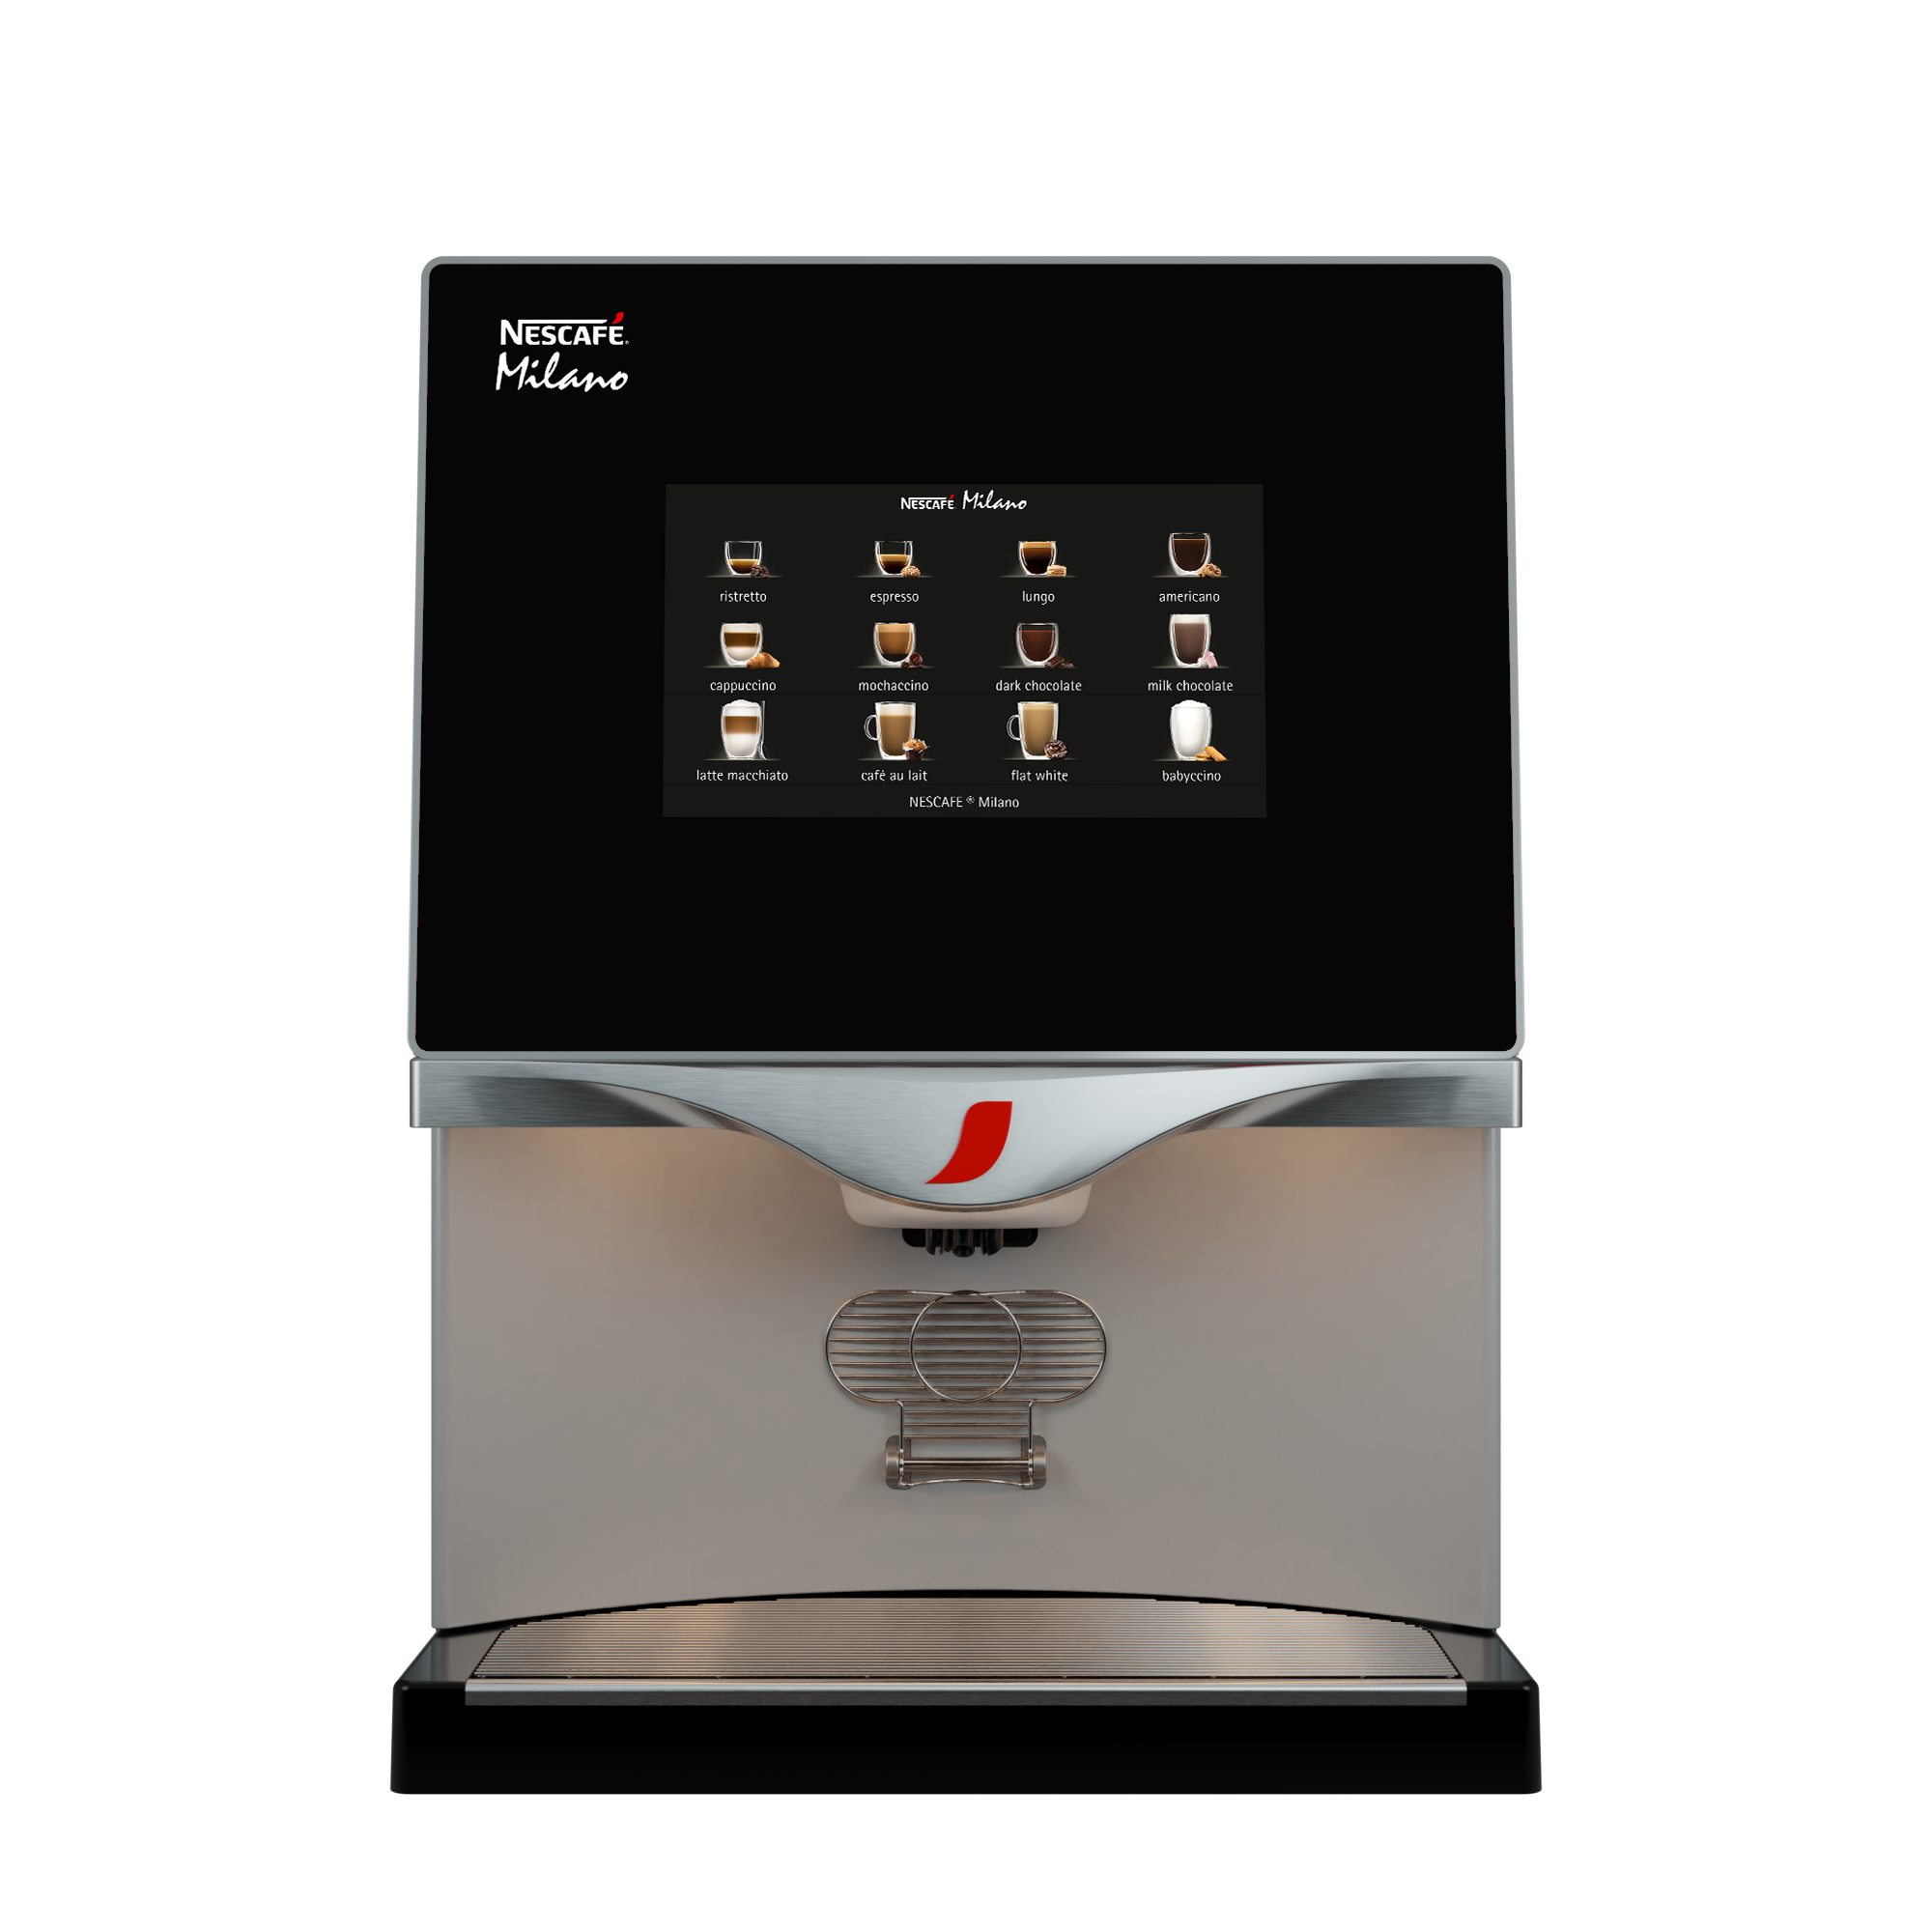 NESCAFE Milano FTS 60_front.png